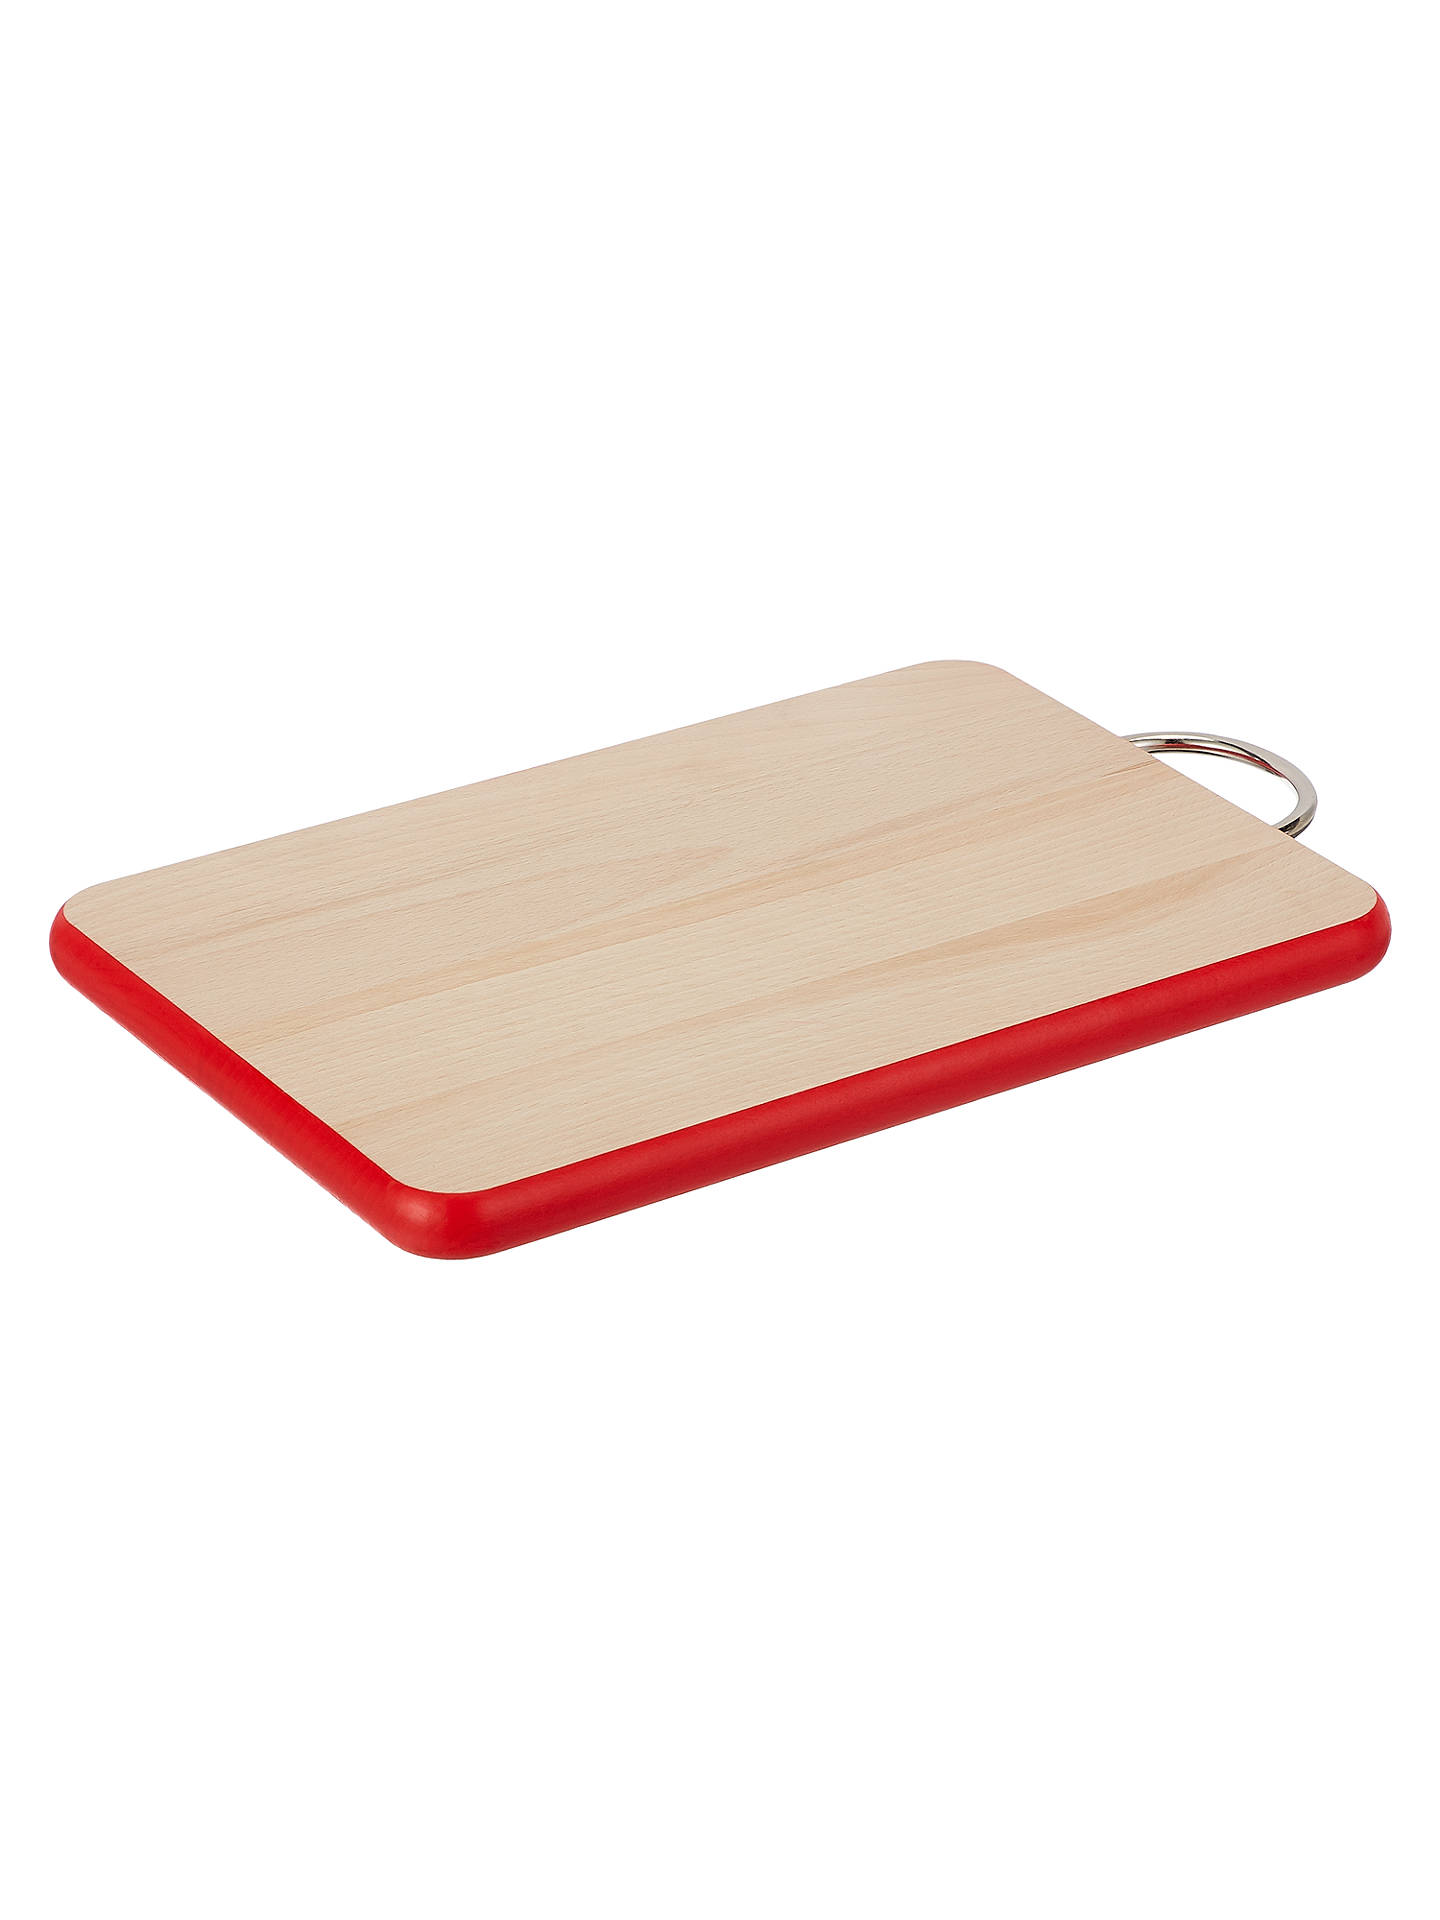 BuyJohn Lewis & Partners Novelty Small Red Trim Chopping Board, L23cm, FSC-Certified (Beech Wood) Online at johnlewis.com